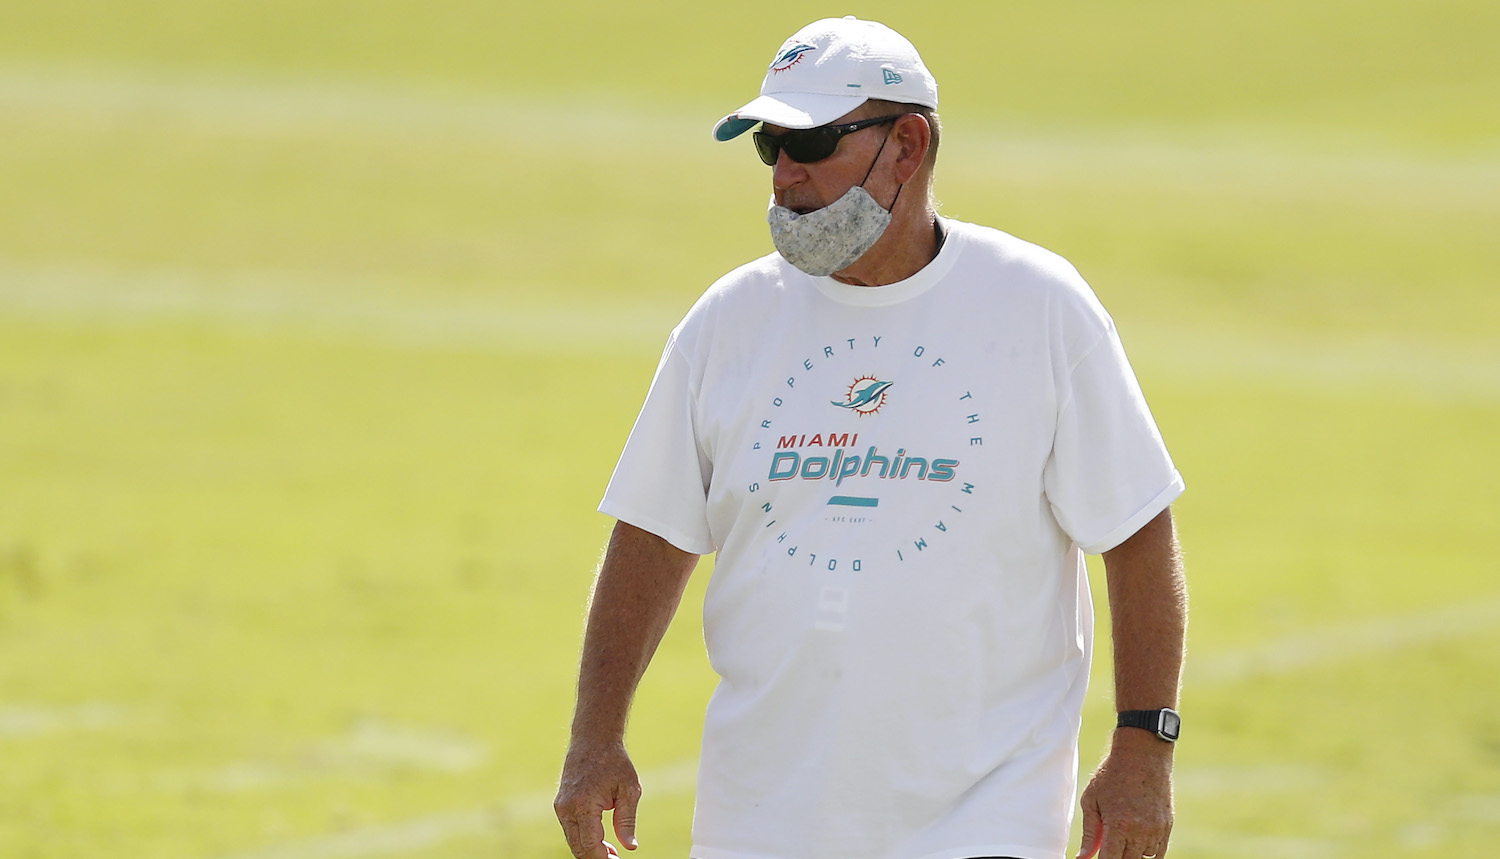 DAVIE, FLORIDA - AUGUST 18: Offensive coordinator Chan Gailey of the Miami Dolphins looks on during training camp at Baptist Health Training Facility at Nova Southern University on August 18, 2020 in Davie, Florida. (Photo by Michael Reaves/Getty Images)